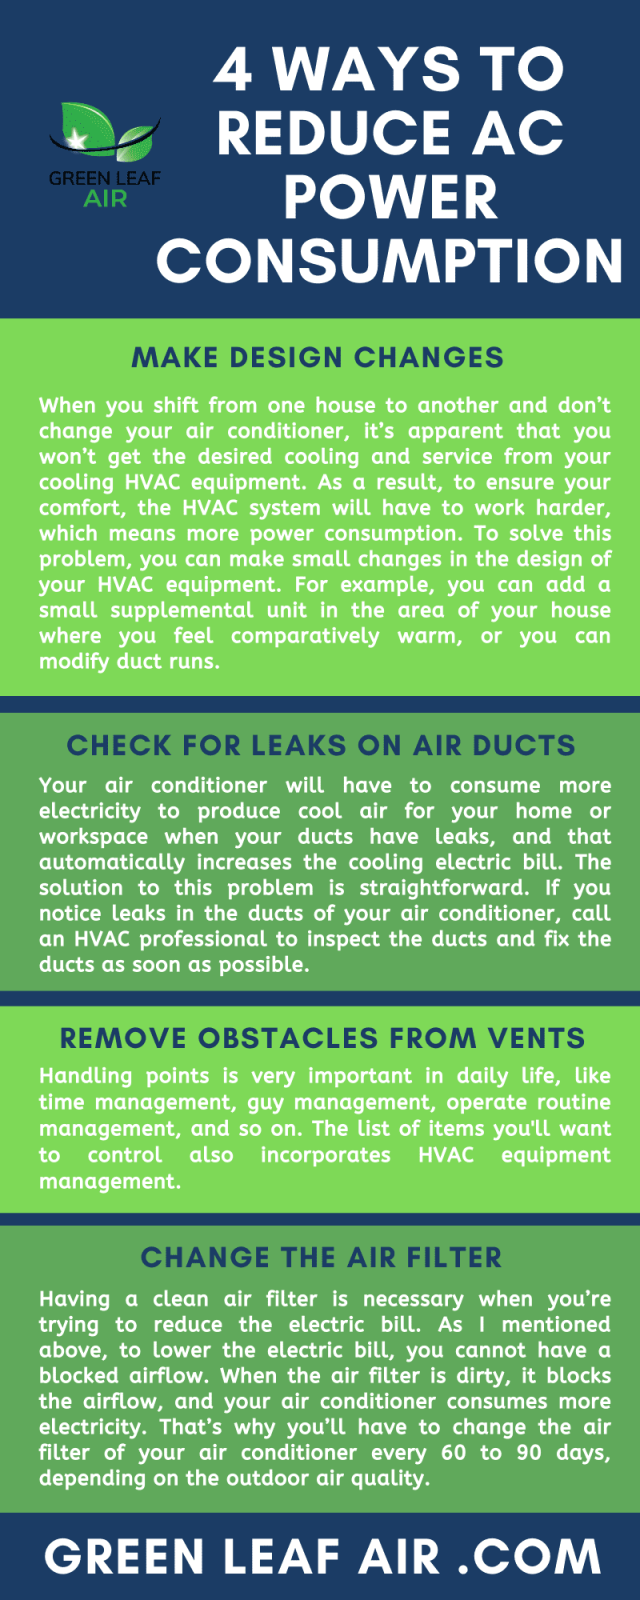 4 Ways to Reduce AC Power Consumption